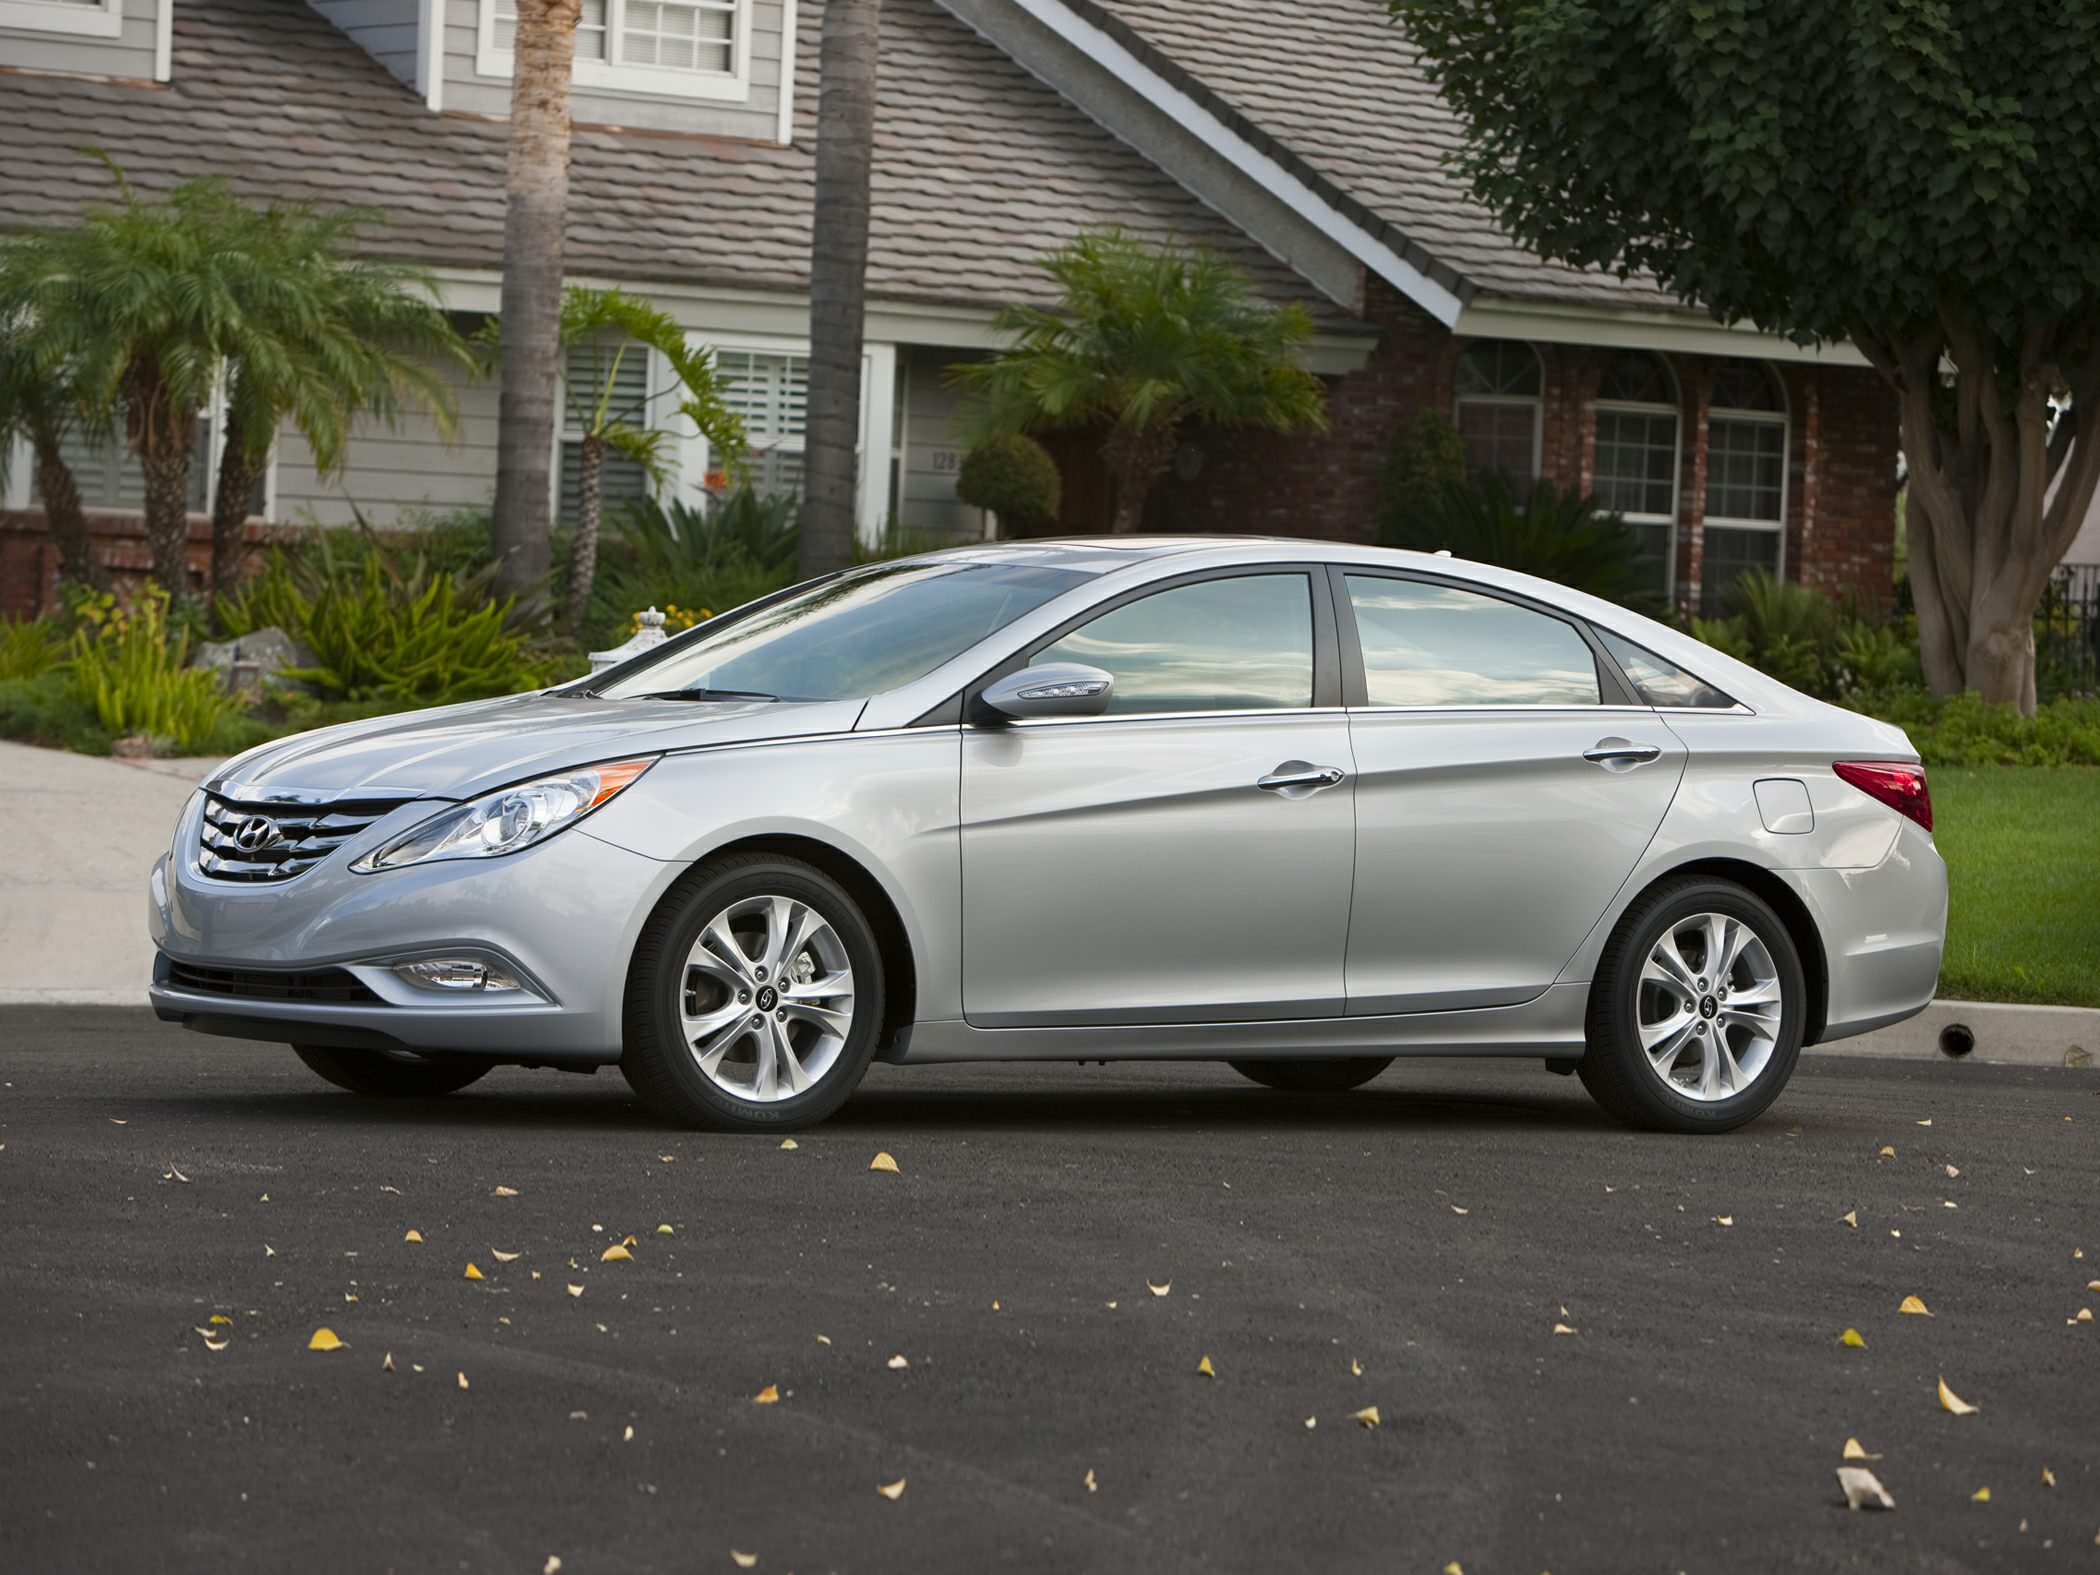 2011 Hyundai Sonata GLS Blue Gas miser Great MPG New Arrival Imagine yourself behind the wheel